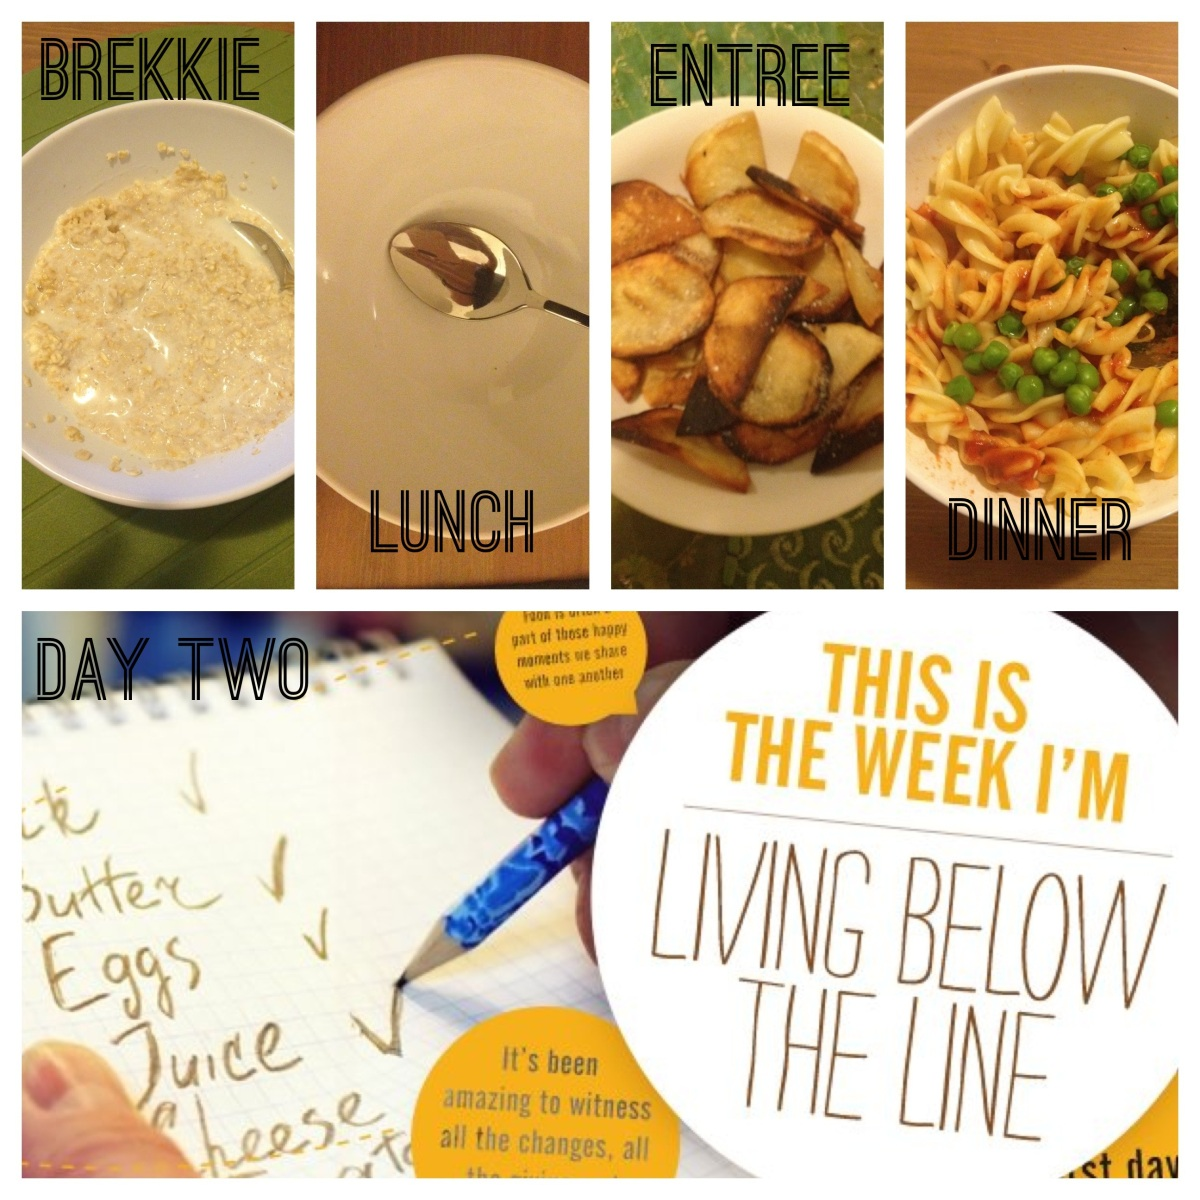 Living Below the Line - Day Two